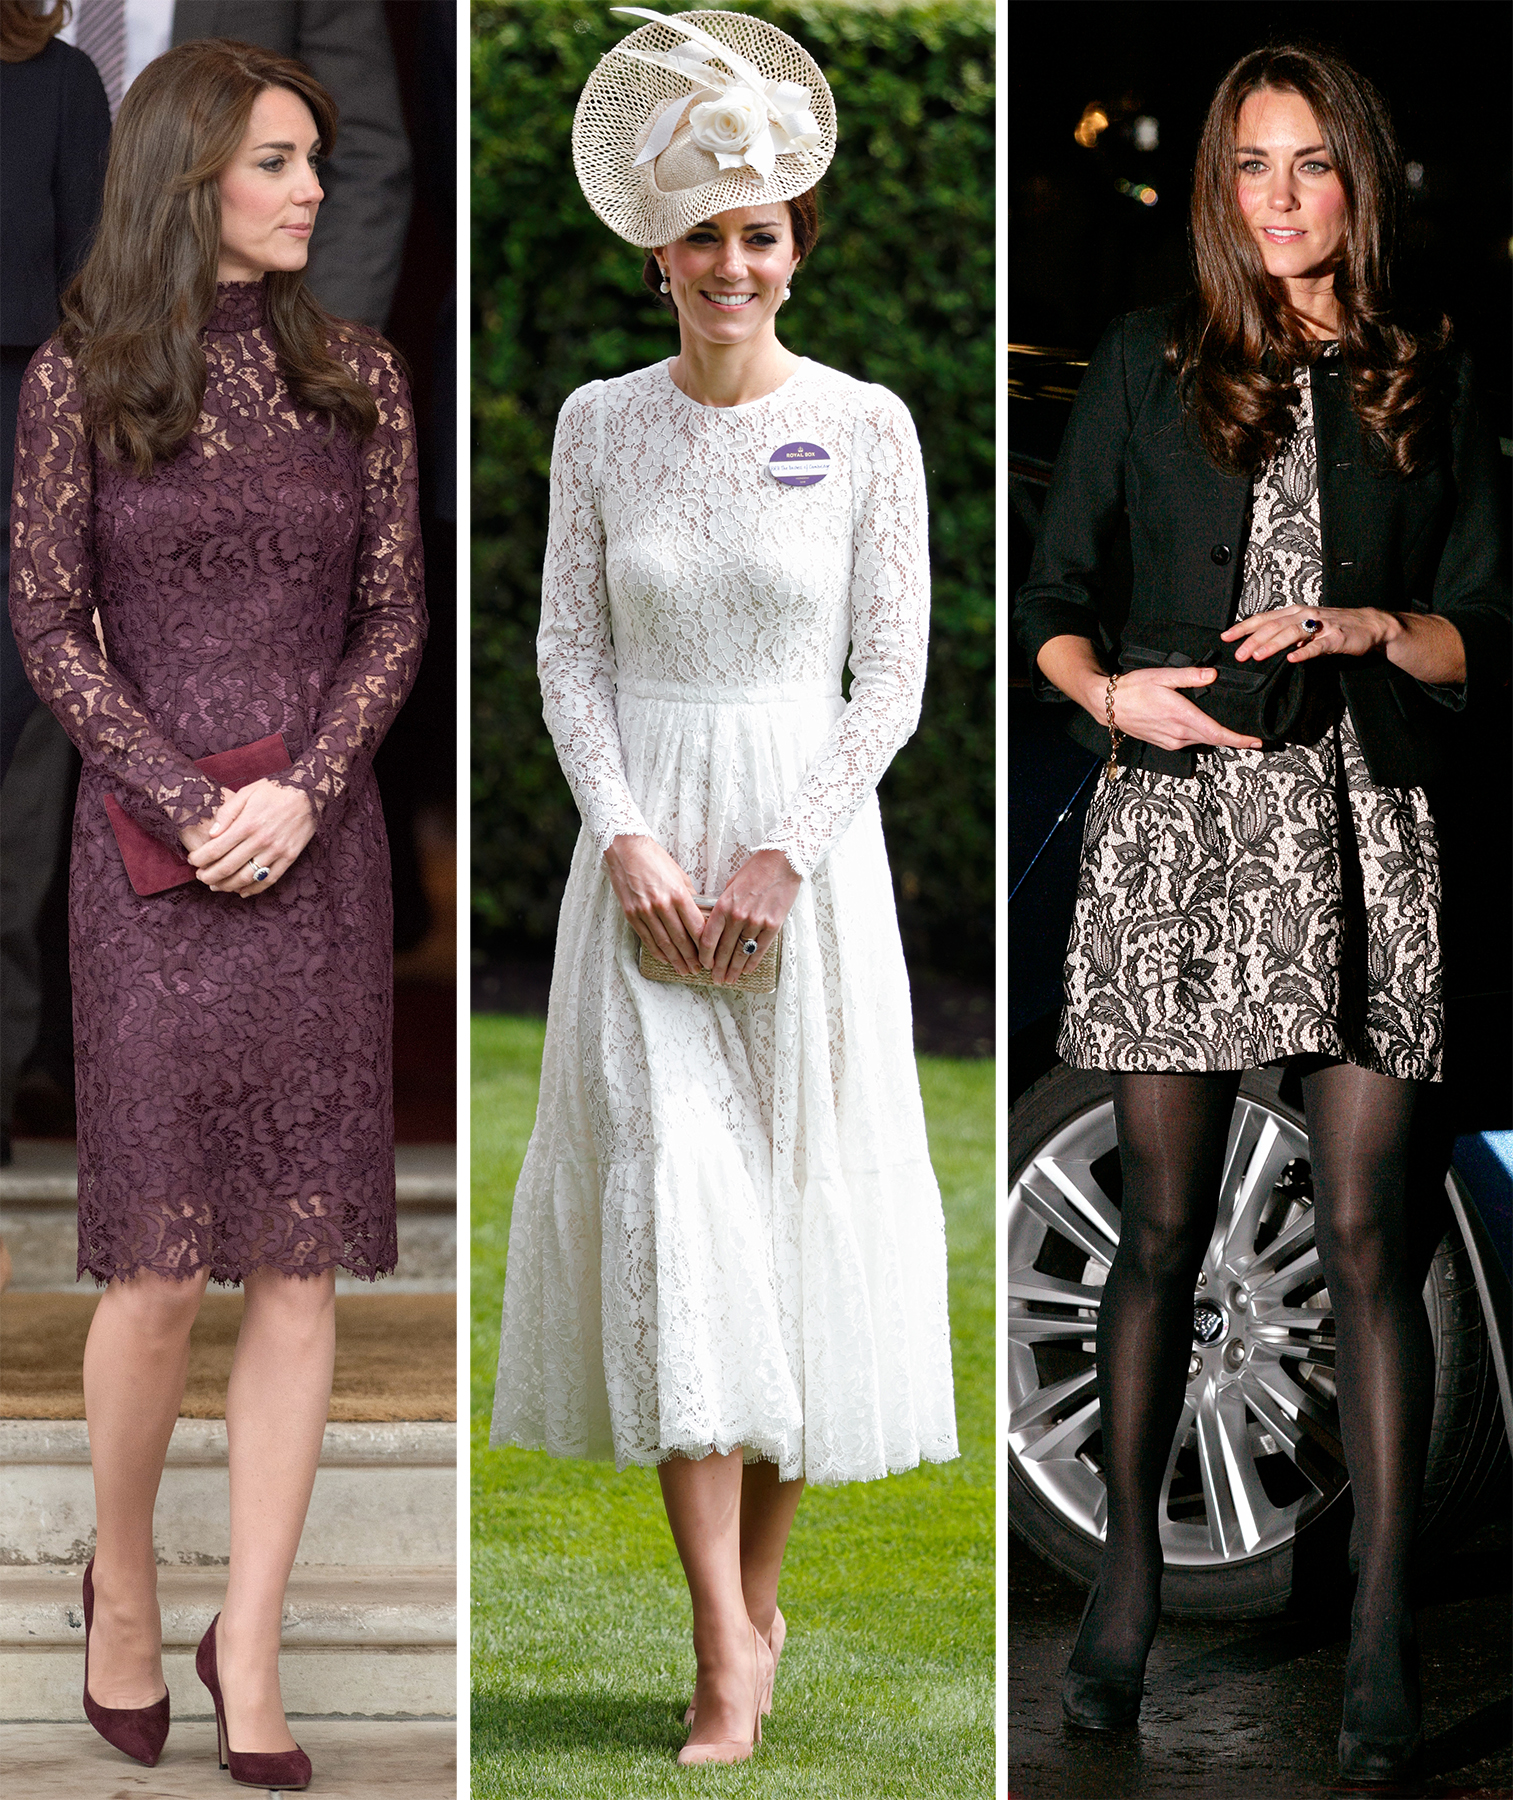 Kate Middleton wearing a lace cocktail dress